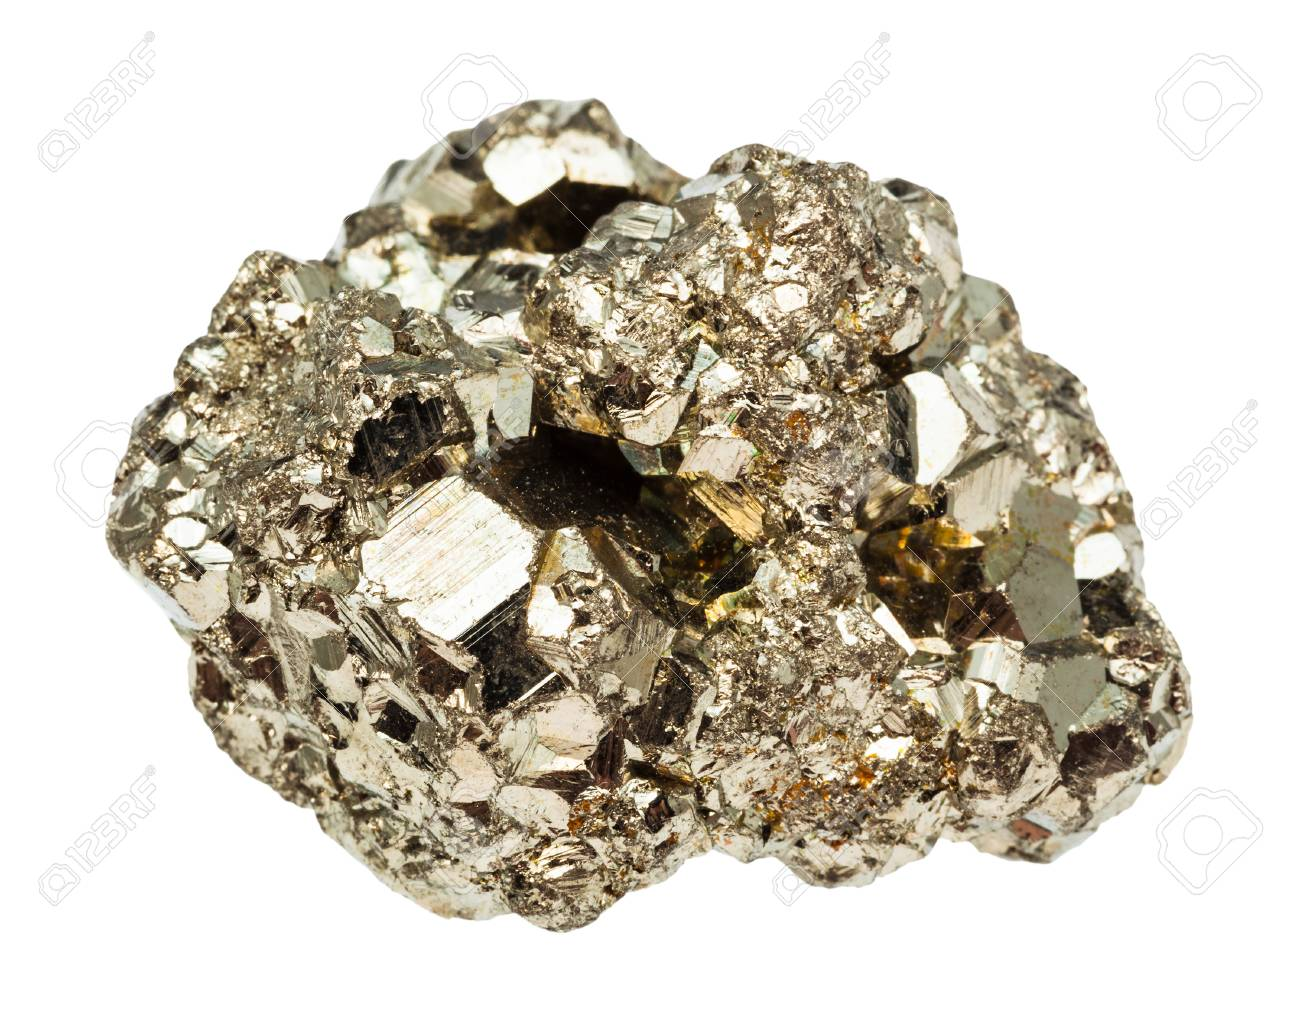 macro shooting of natural rock specimen - raw iron pyrite (fool's gold) stone isolated on white background - 102894685